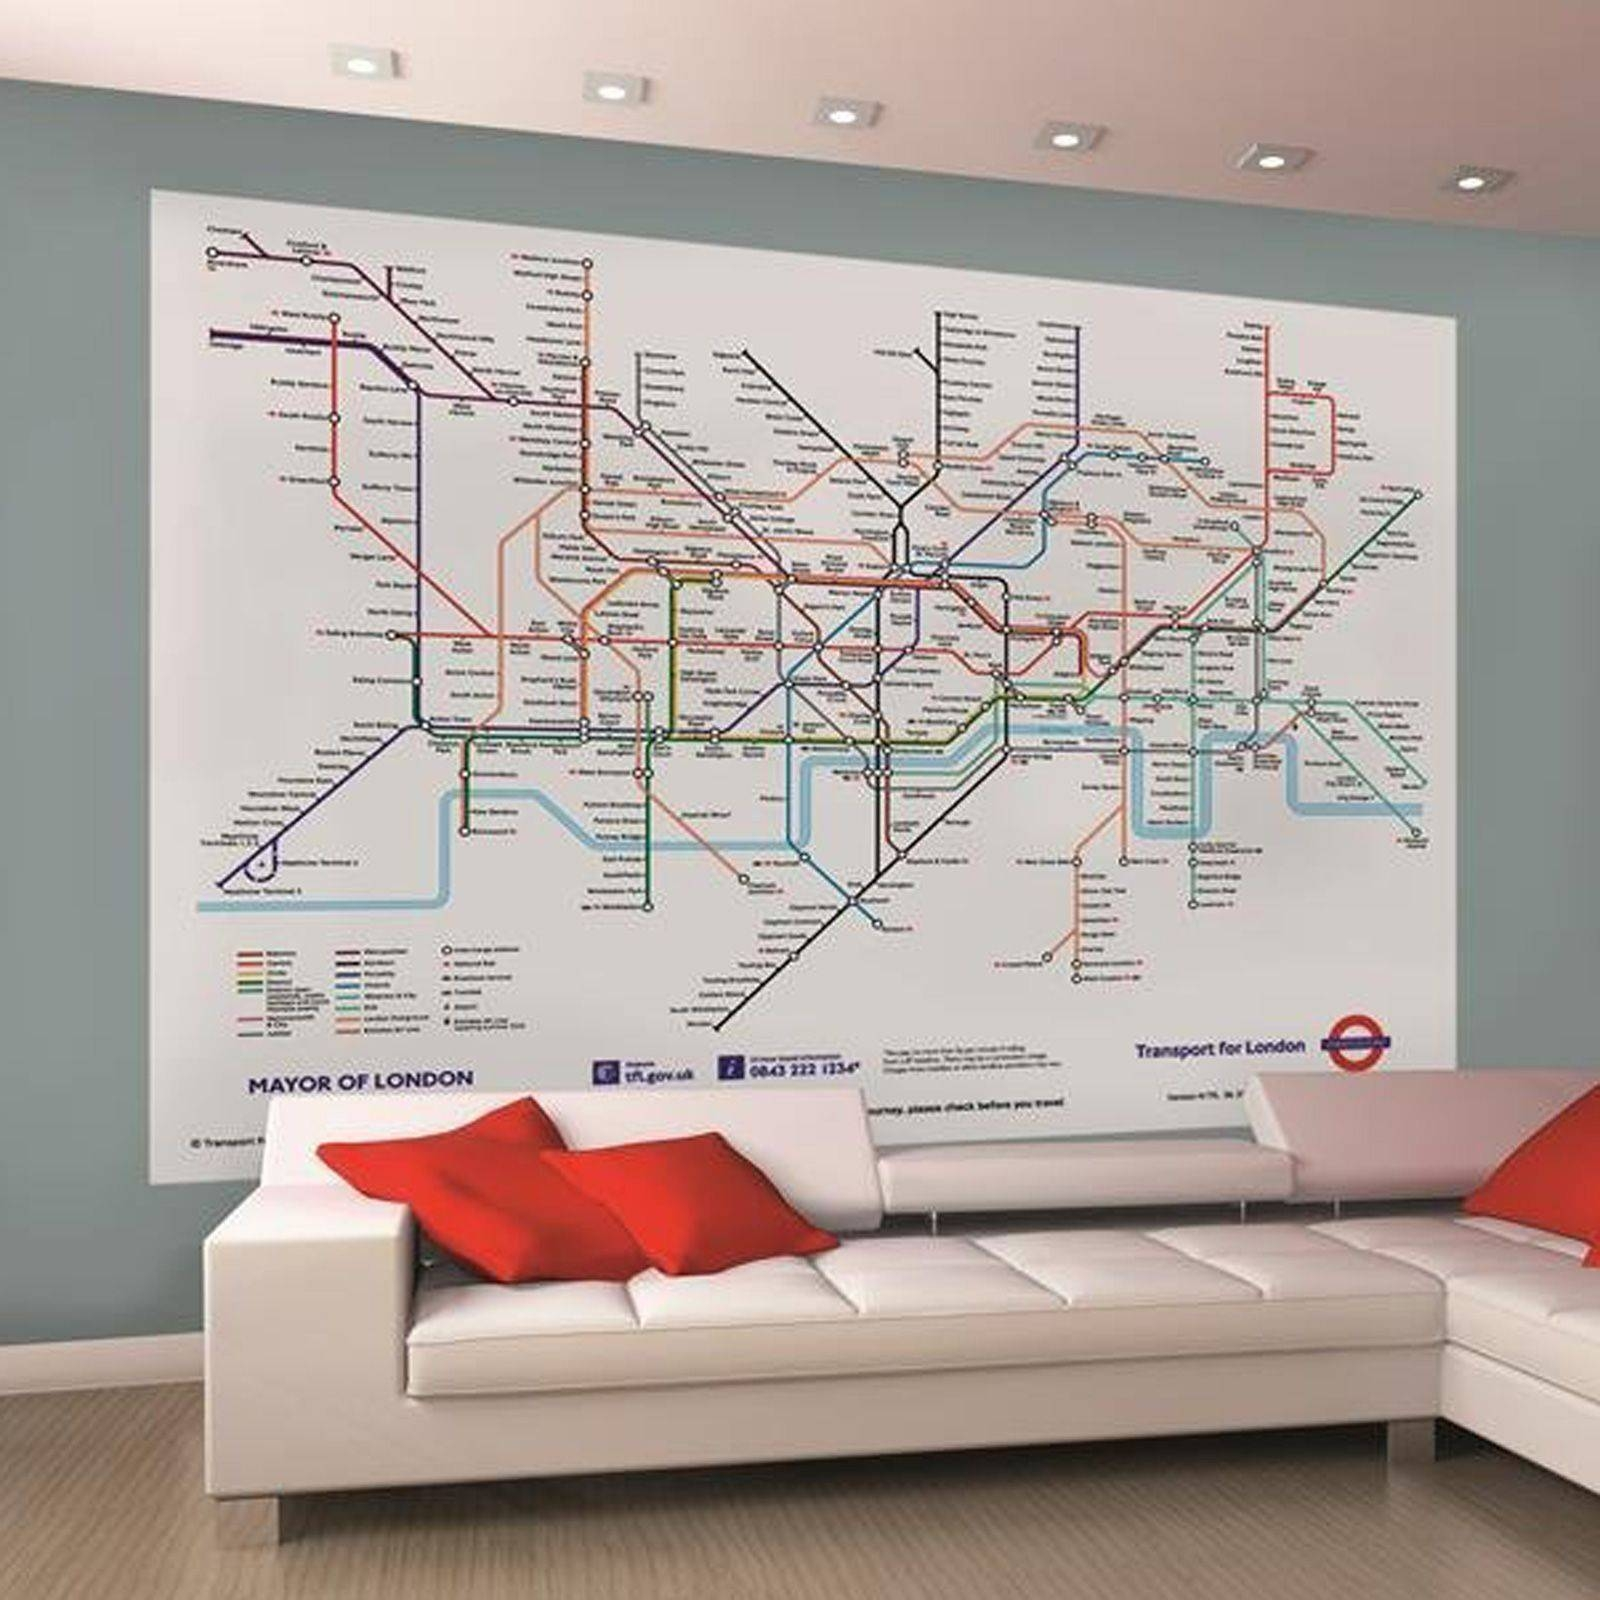 Wall Murals Room Decor Large Photo Wallpaper Various Sizes | Ebay Pertaining To Recent London Tube Map Wall Art (View 3 of 20)